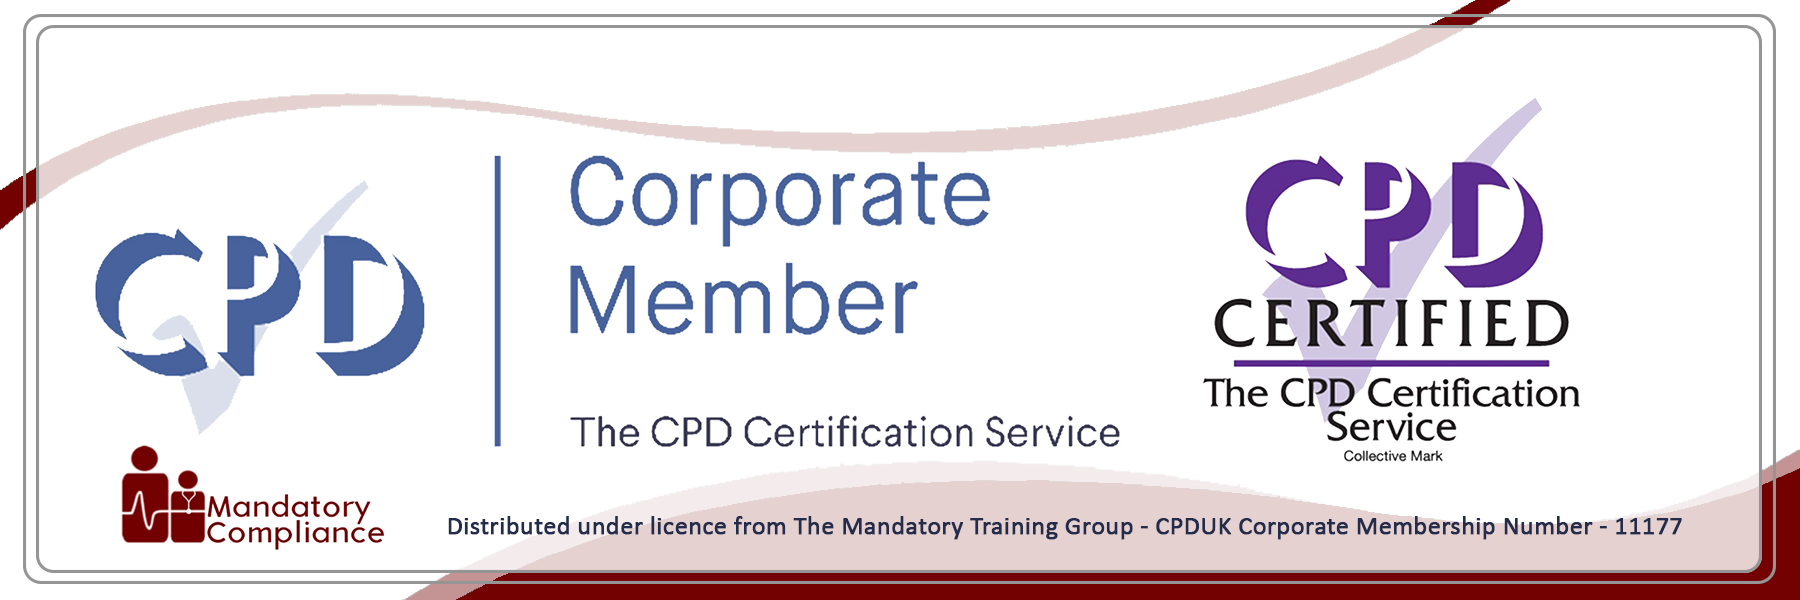 Personal Development Plan - Online-Training-Course-CPD-Accredited-Mandatory-Compliance-UK-